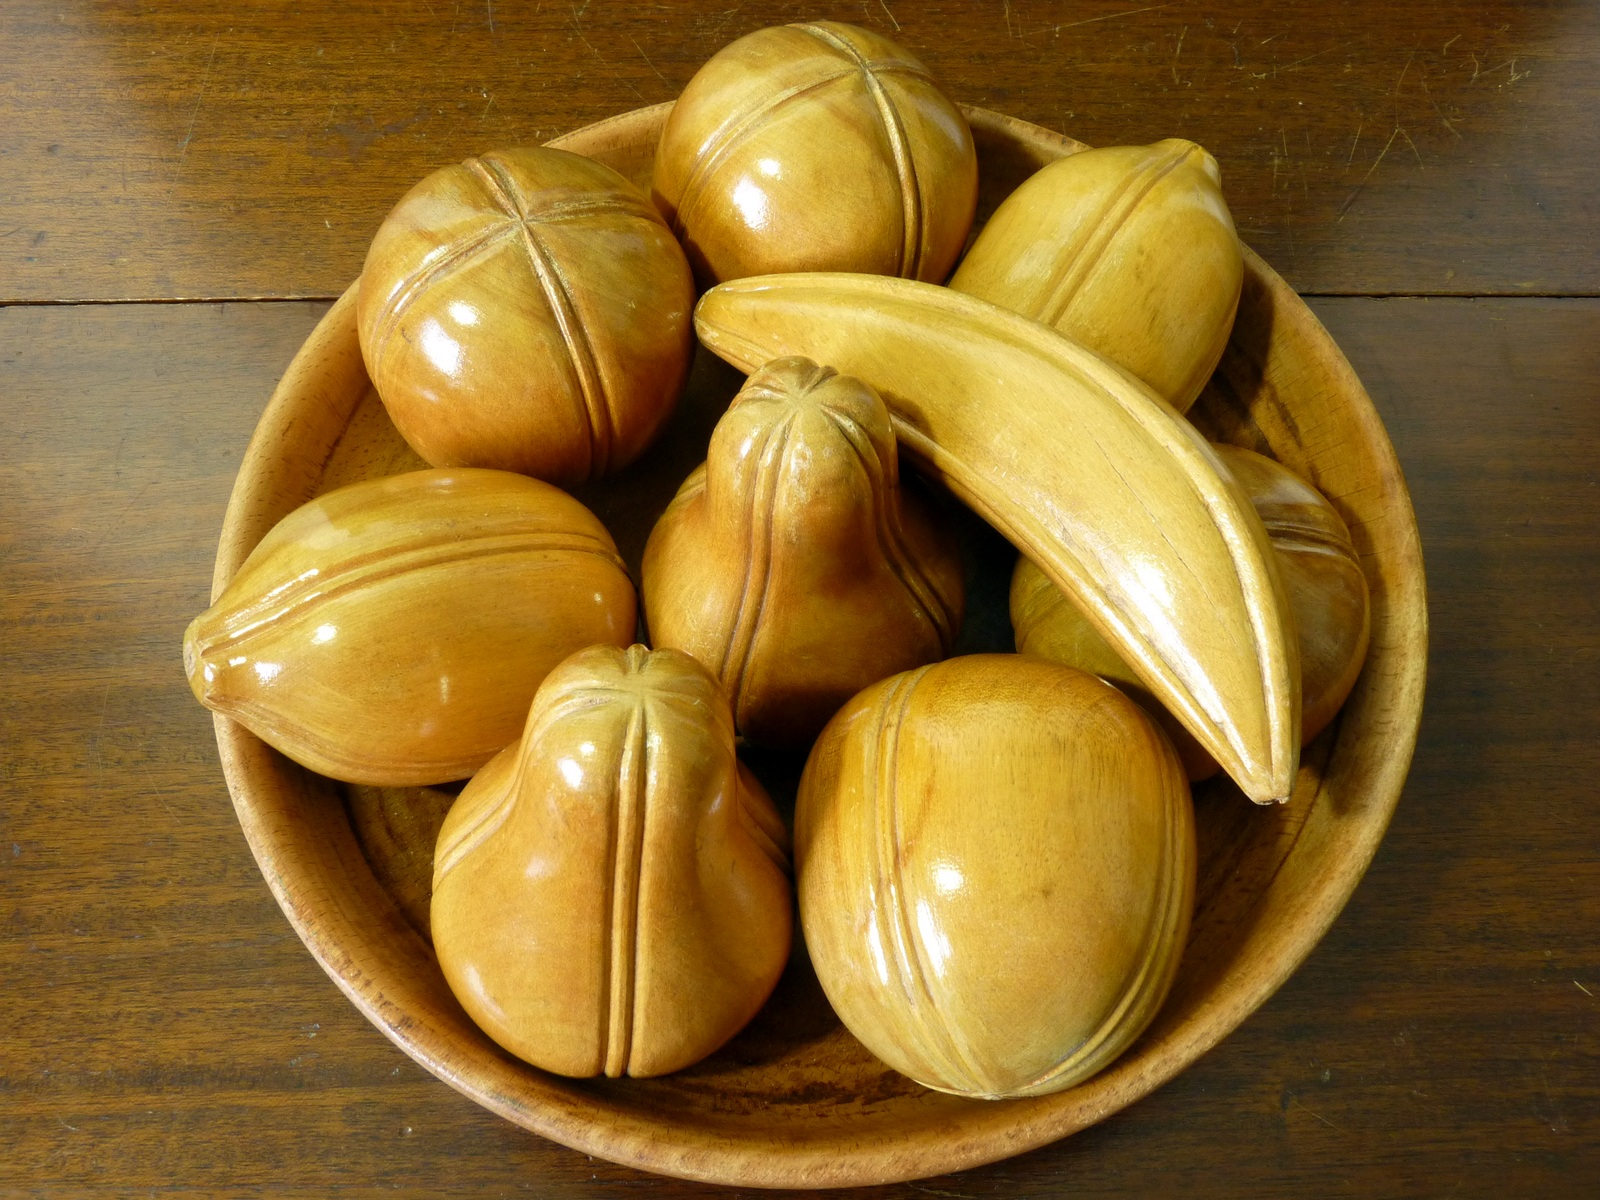 Set of Turned and Carved Wooden Fruit